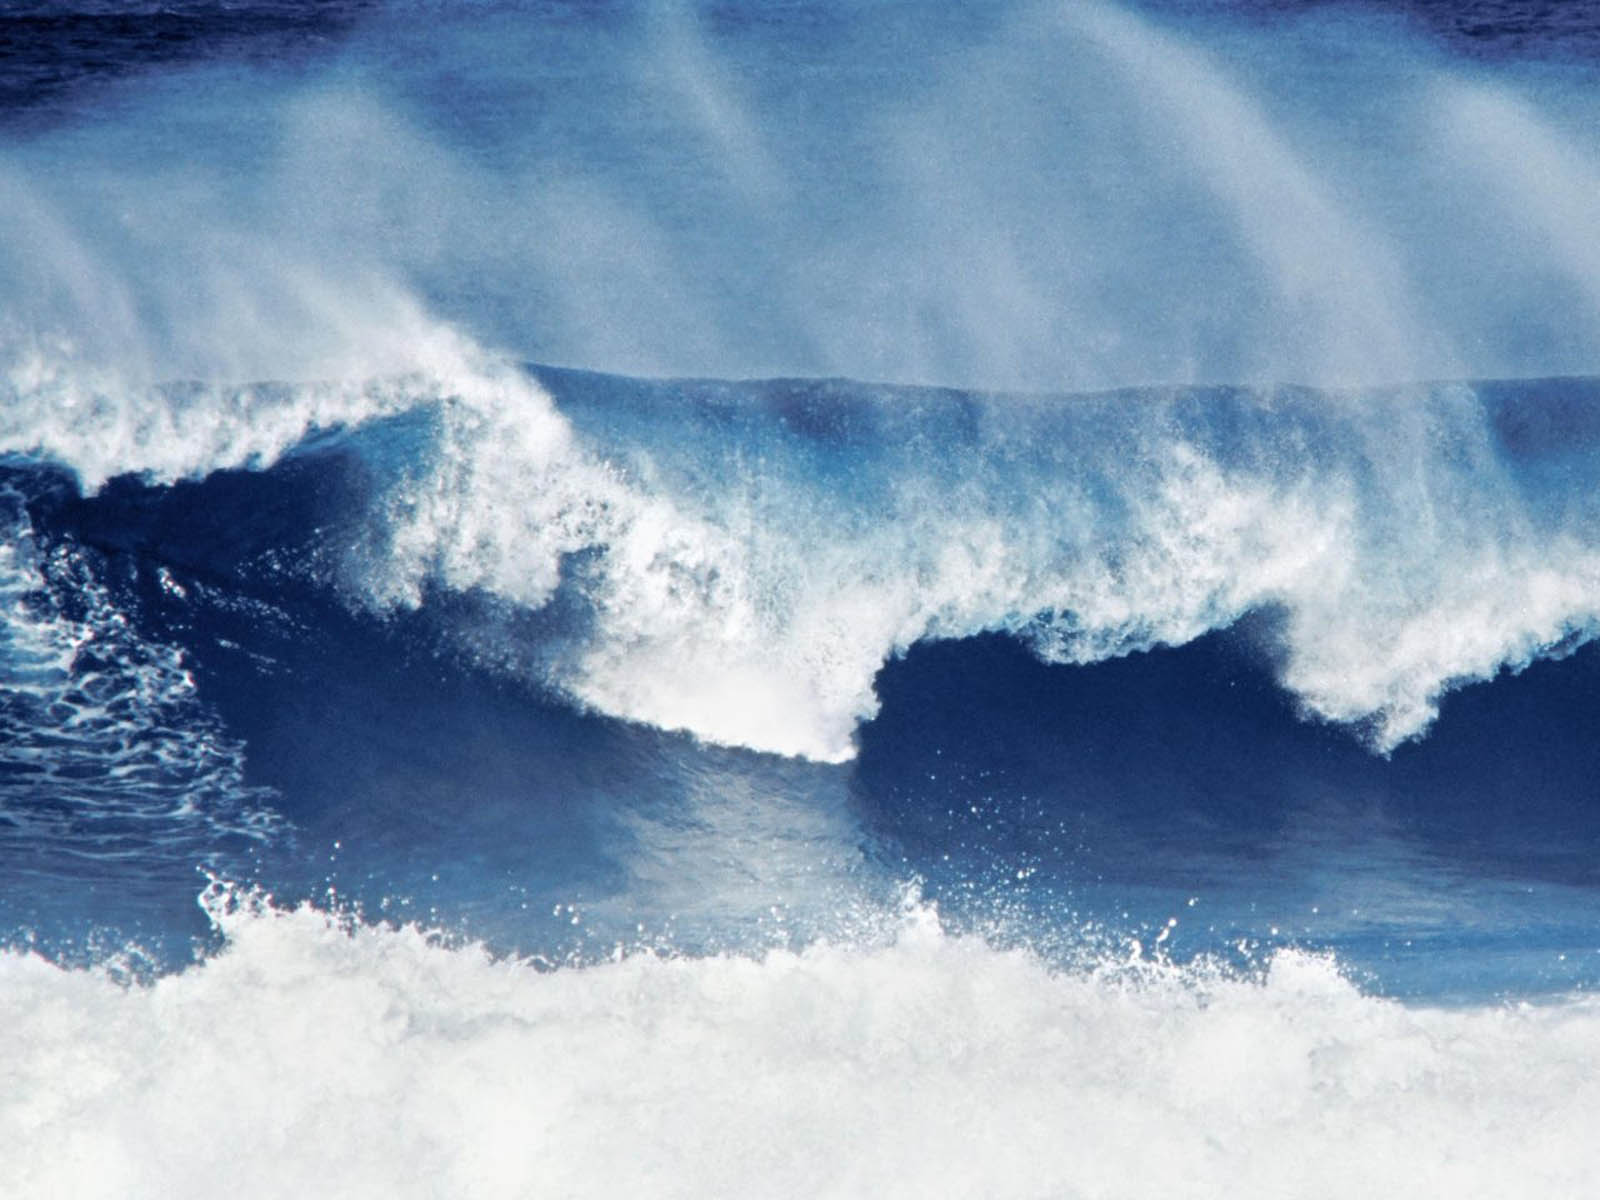 wallpapers big wave wallpapers